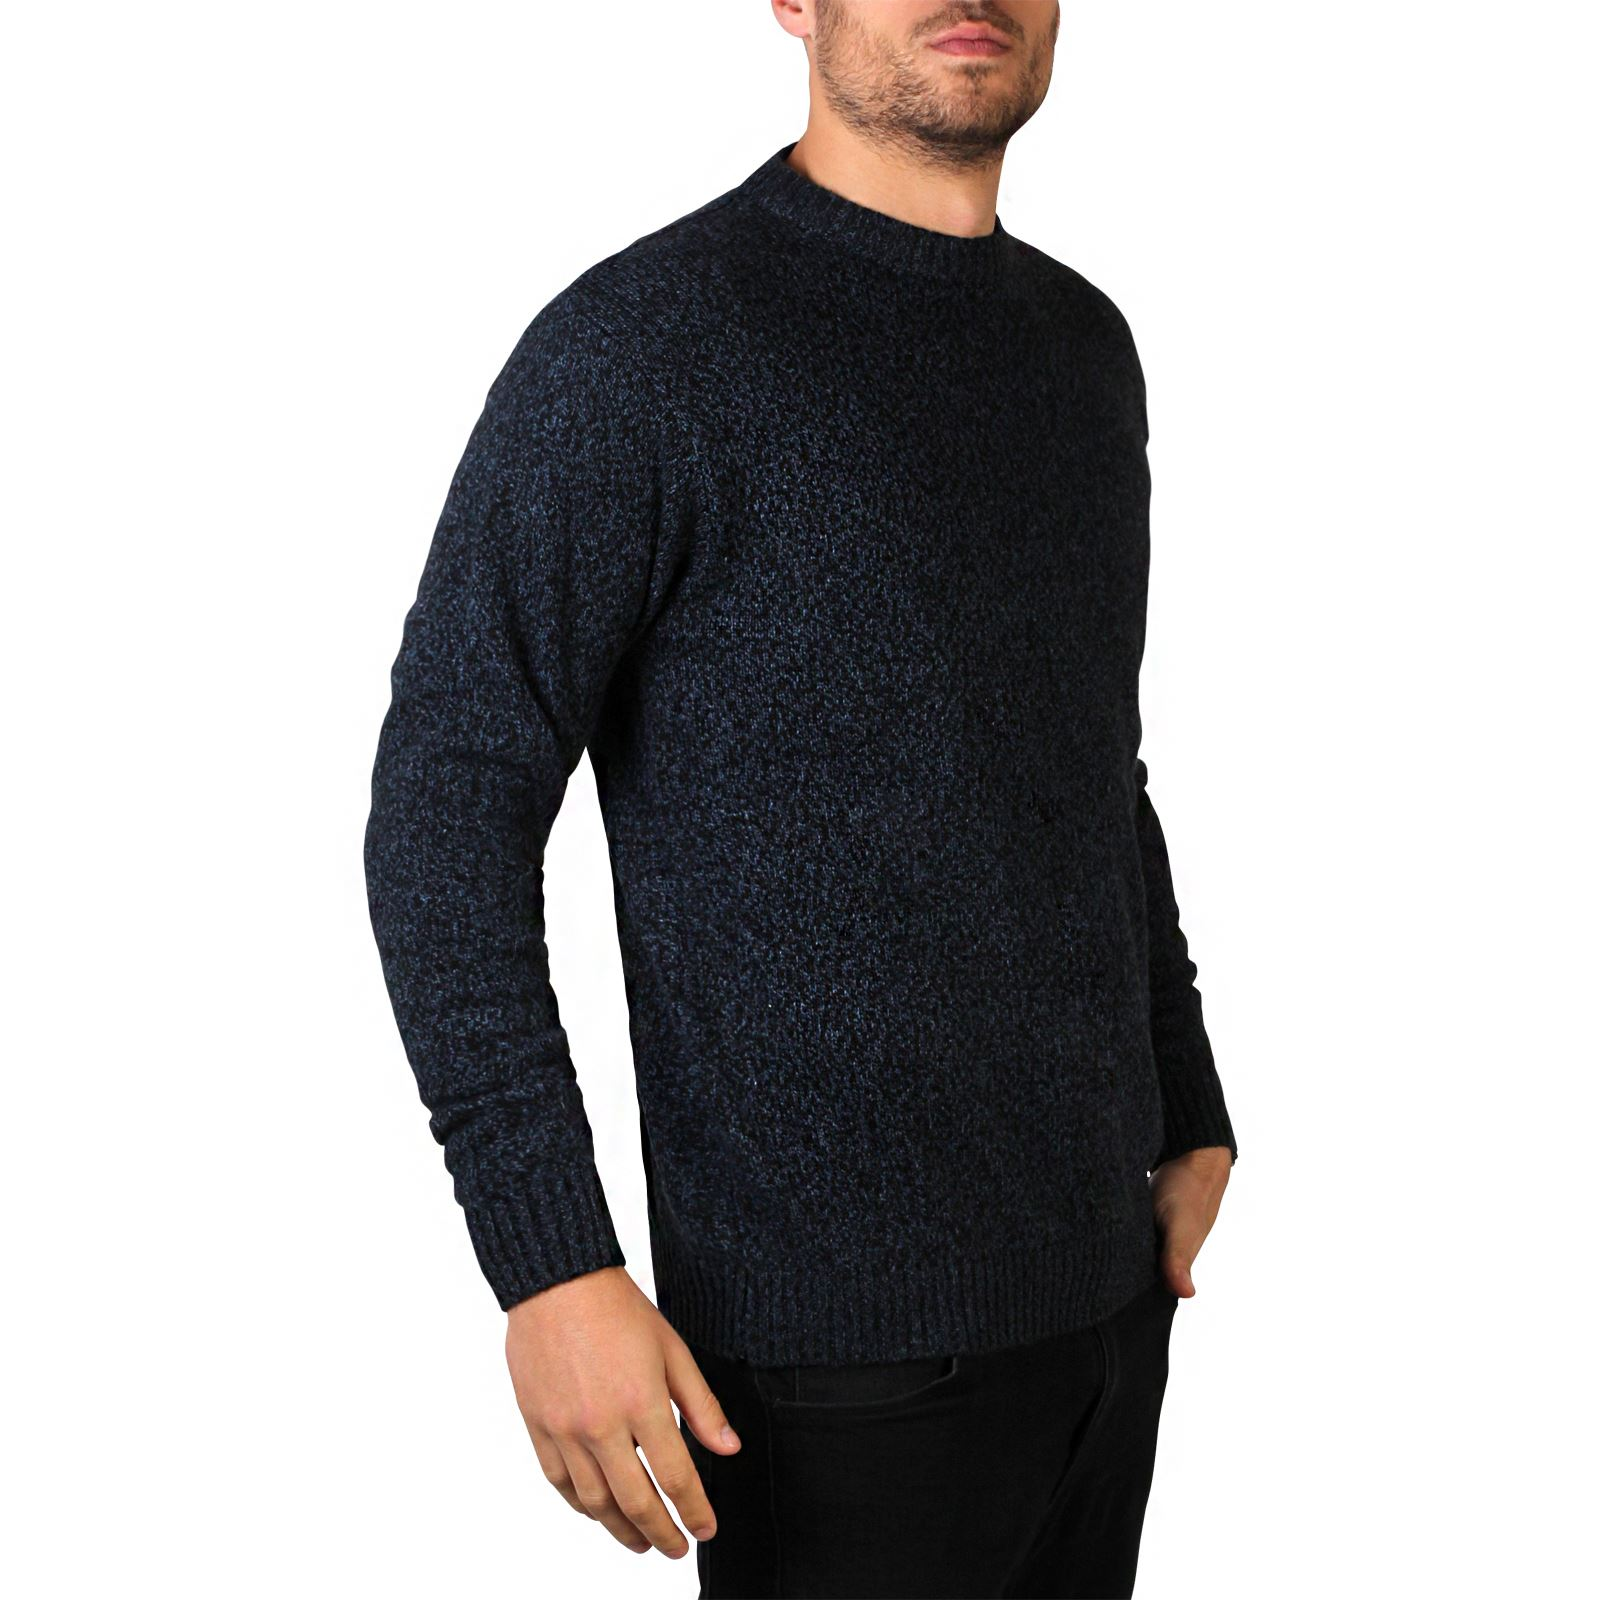 SHOPBOP - Sweaters & Knits FASTEST FREE SHIPPING WORLDWIDE on Sweaters & Knits & FREE EASY RETURNS.